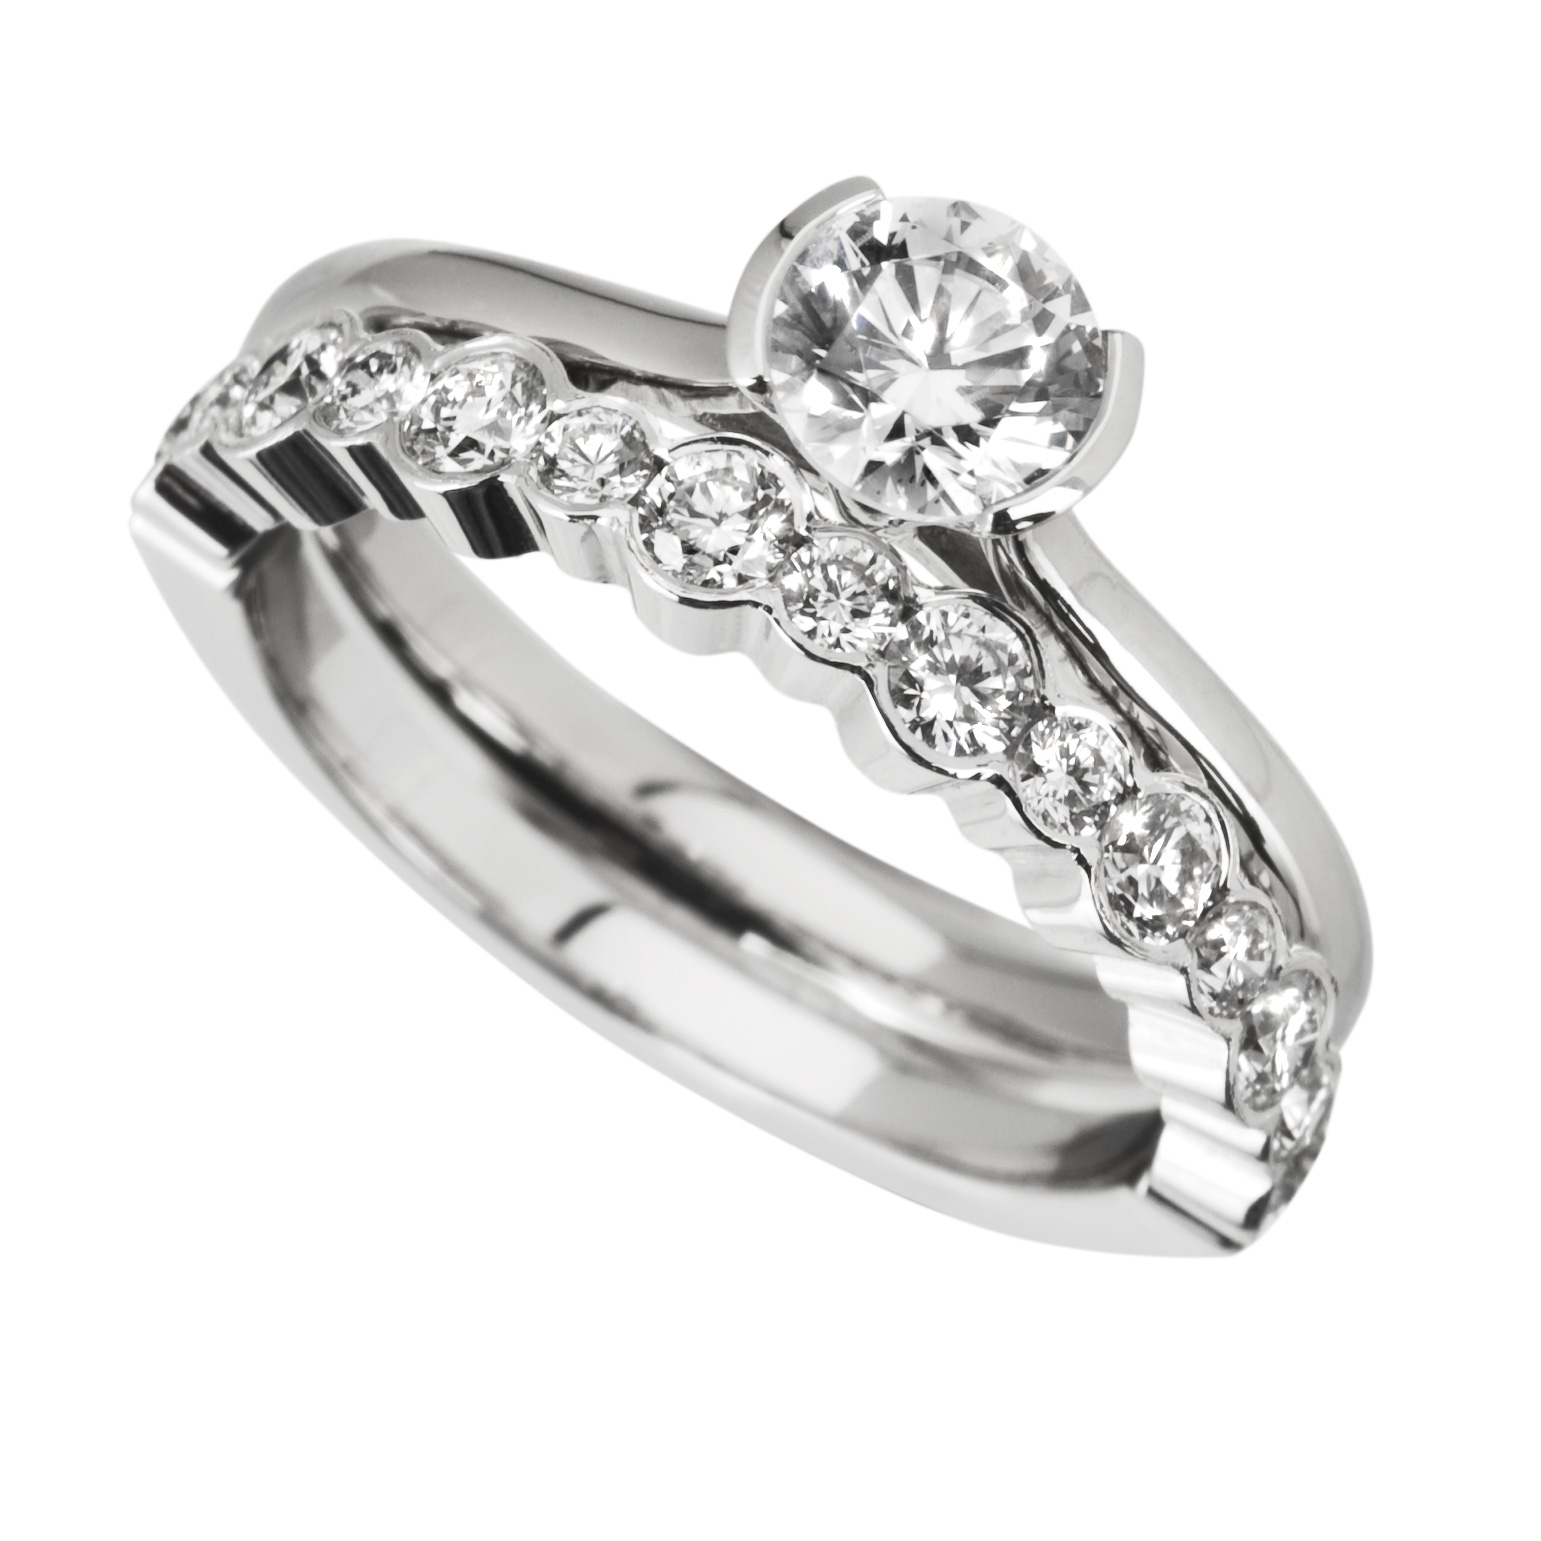 Wedding And Engagement Ring Set Diamonds And Rings The Online Jeweller Launches A New